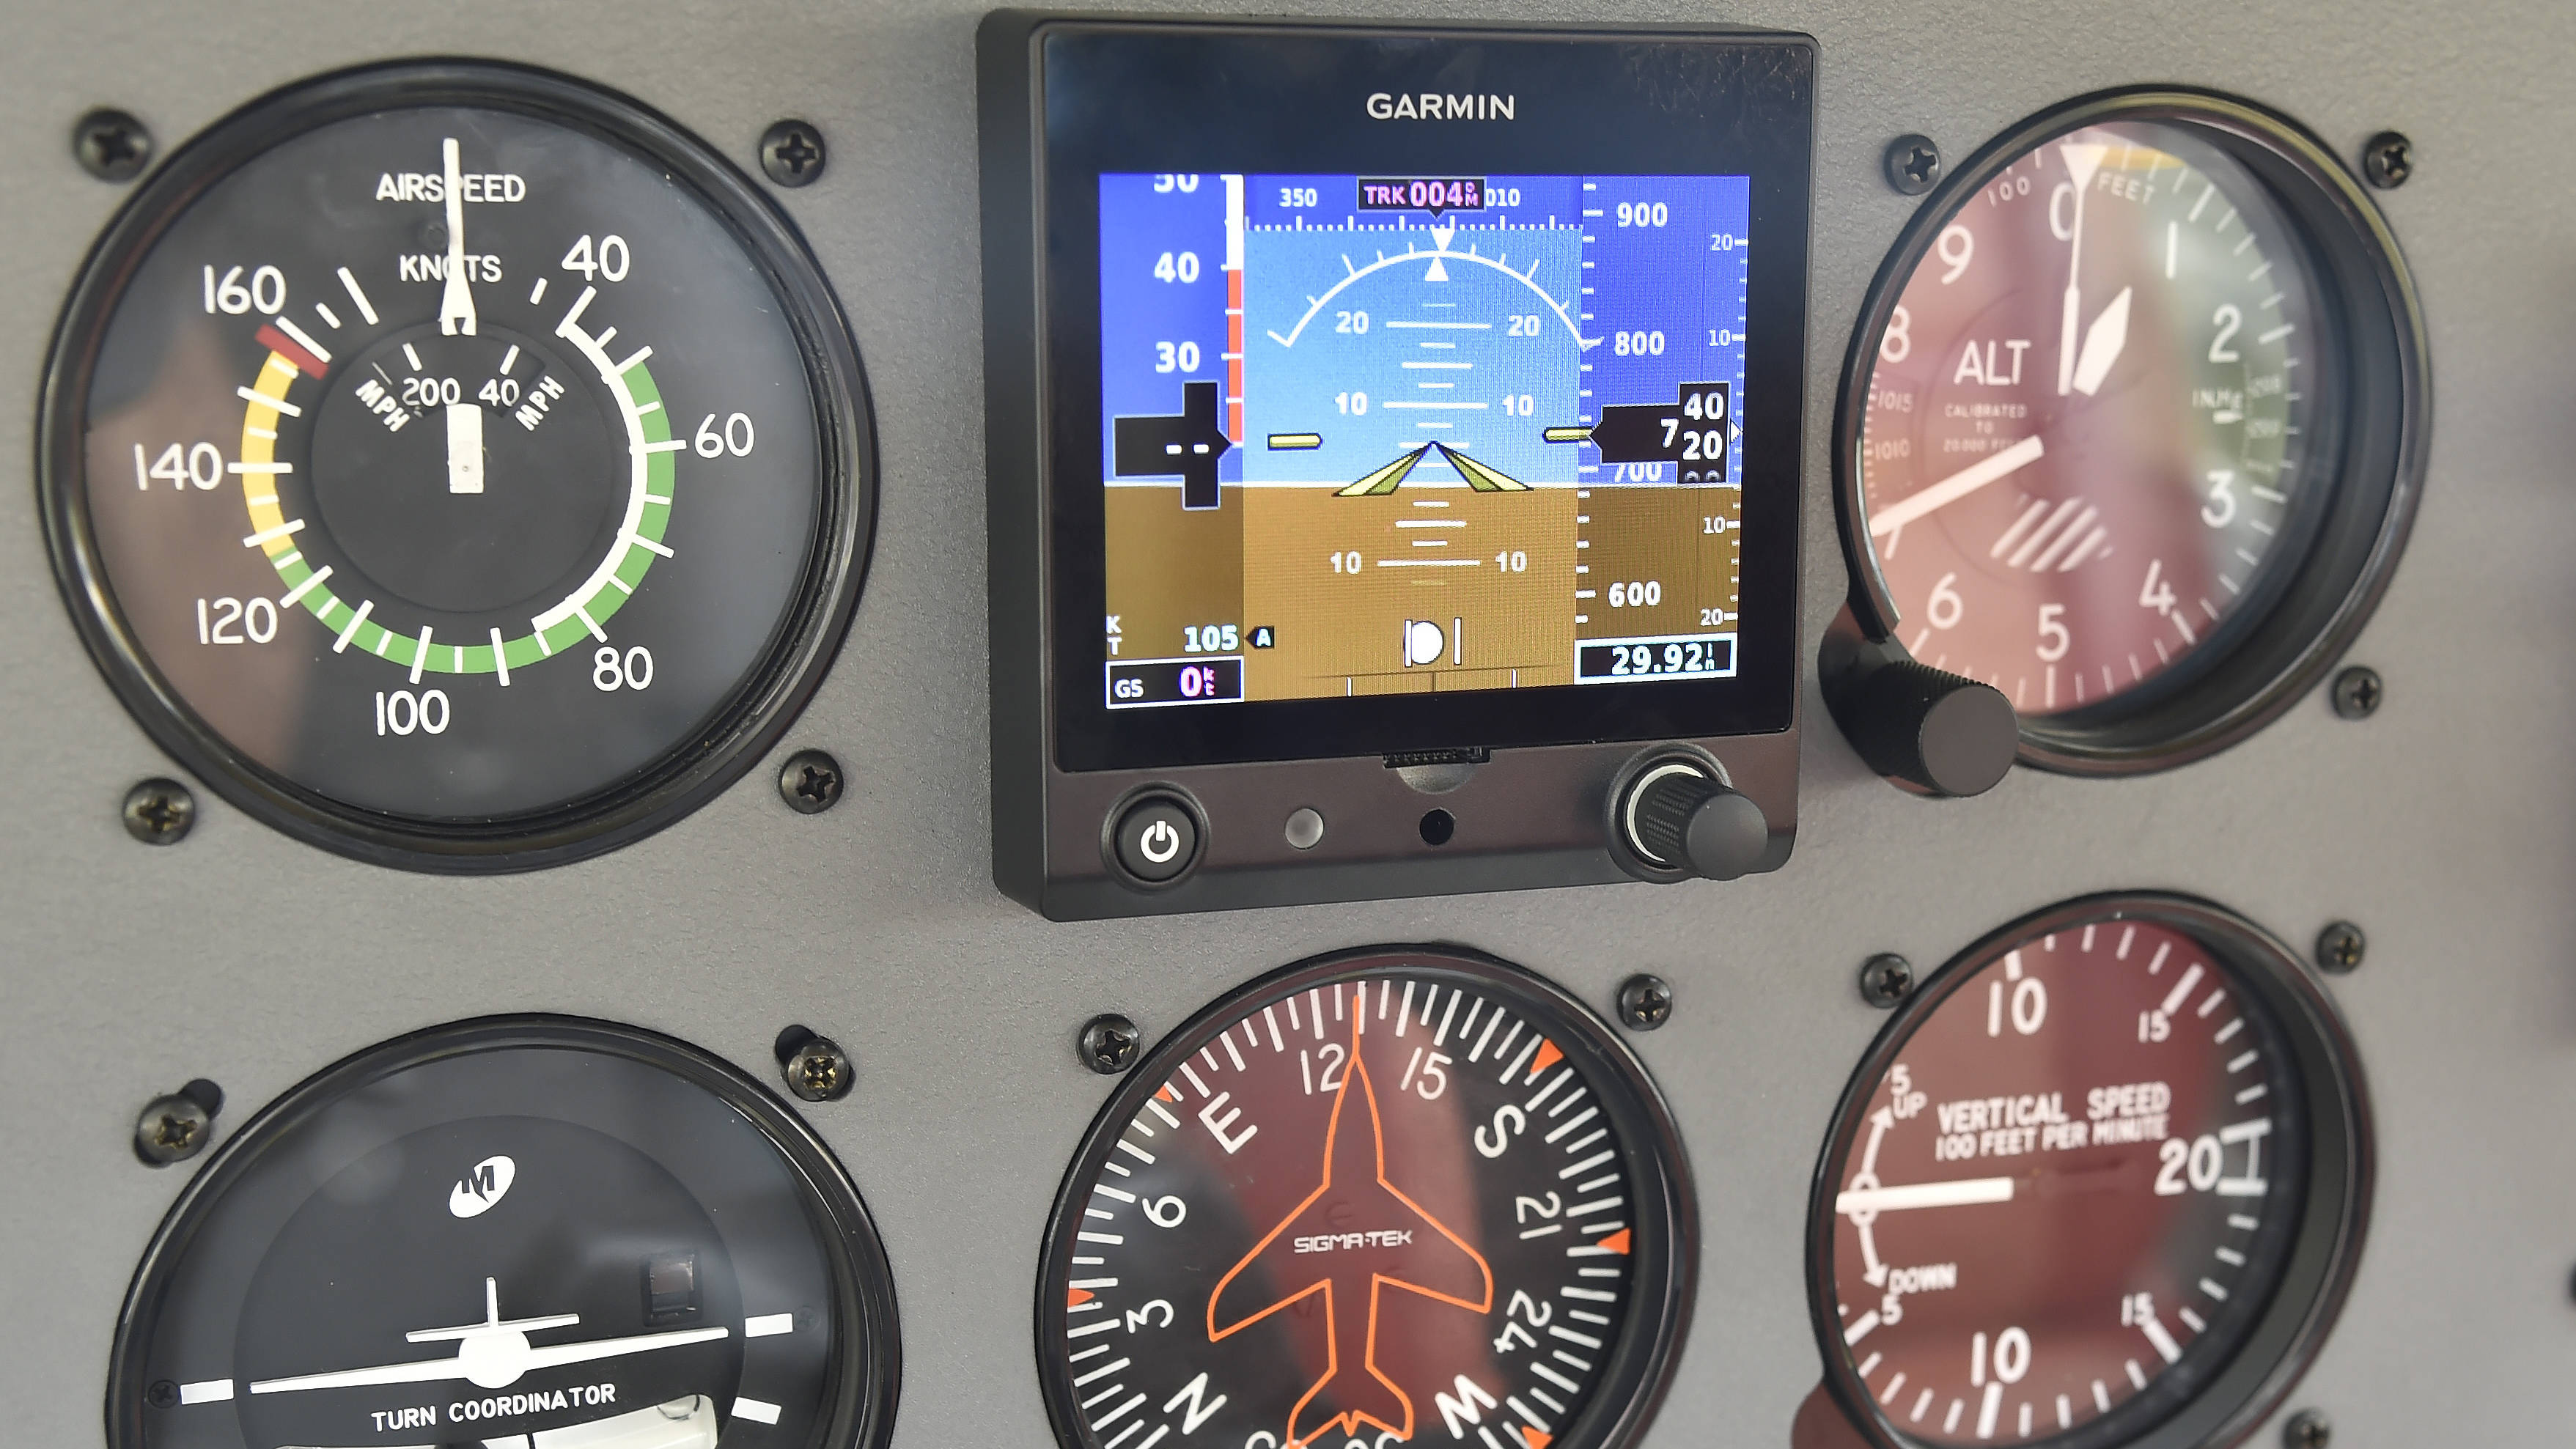 Garmin's G5 electronic attitude indicator is shown installed in the AOPA Sweeps 172 during EAA AirVenture at Wittman Regional Airport in Oshkosh July 28. Photo by David Tulis.